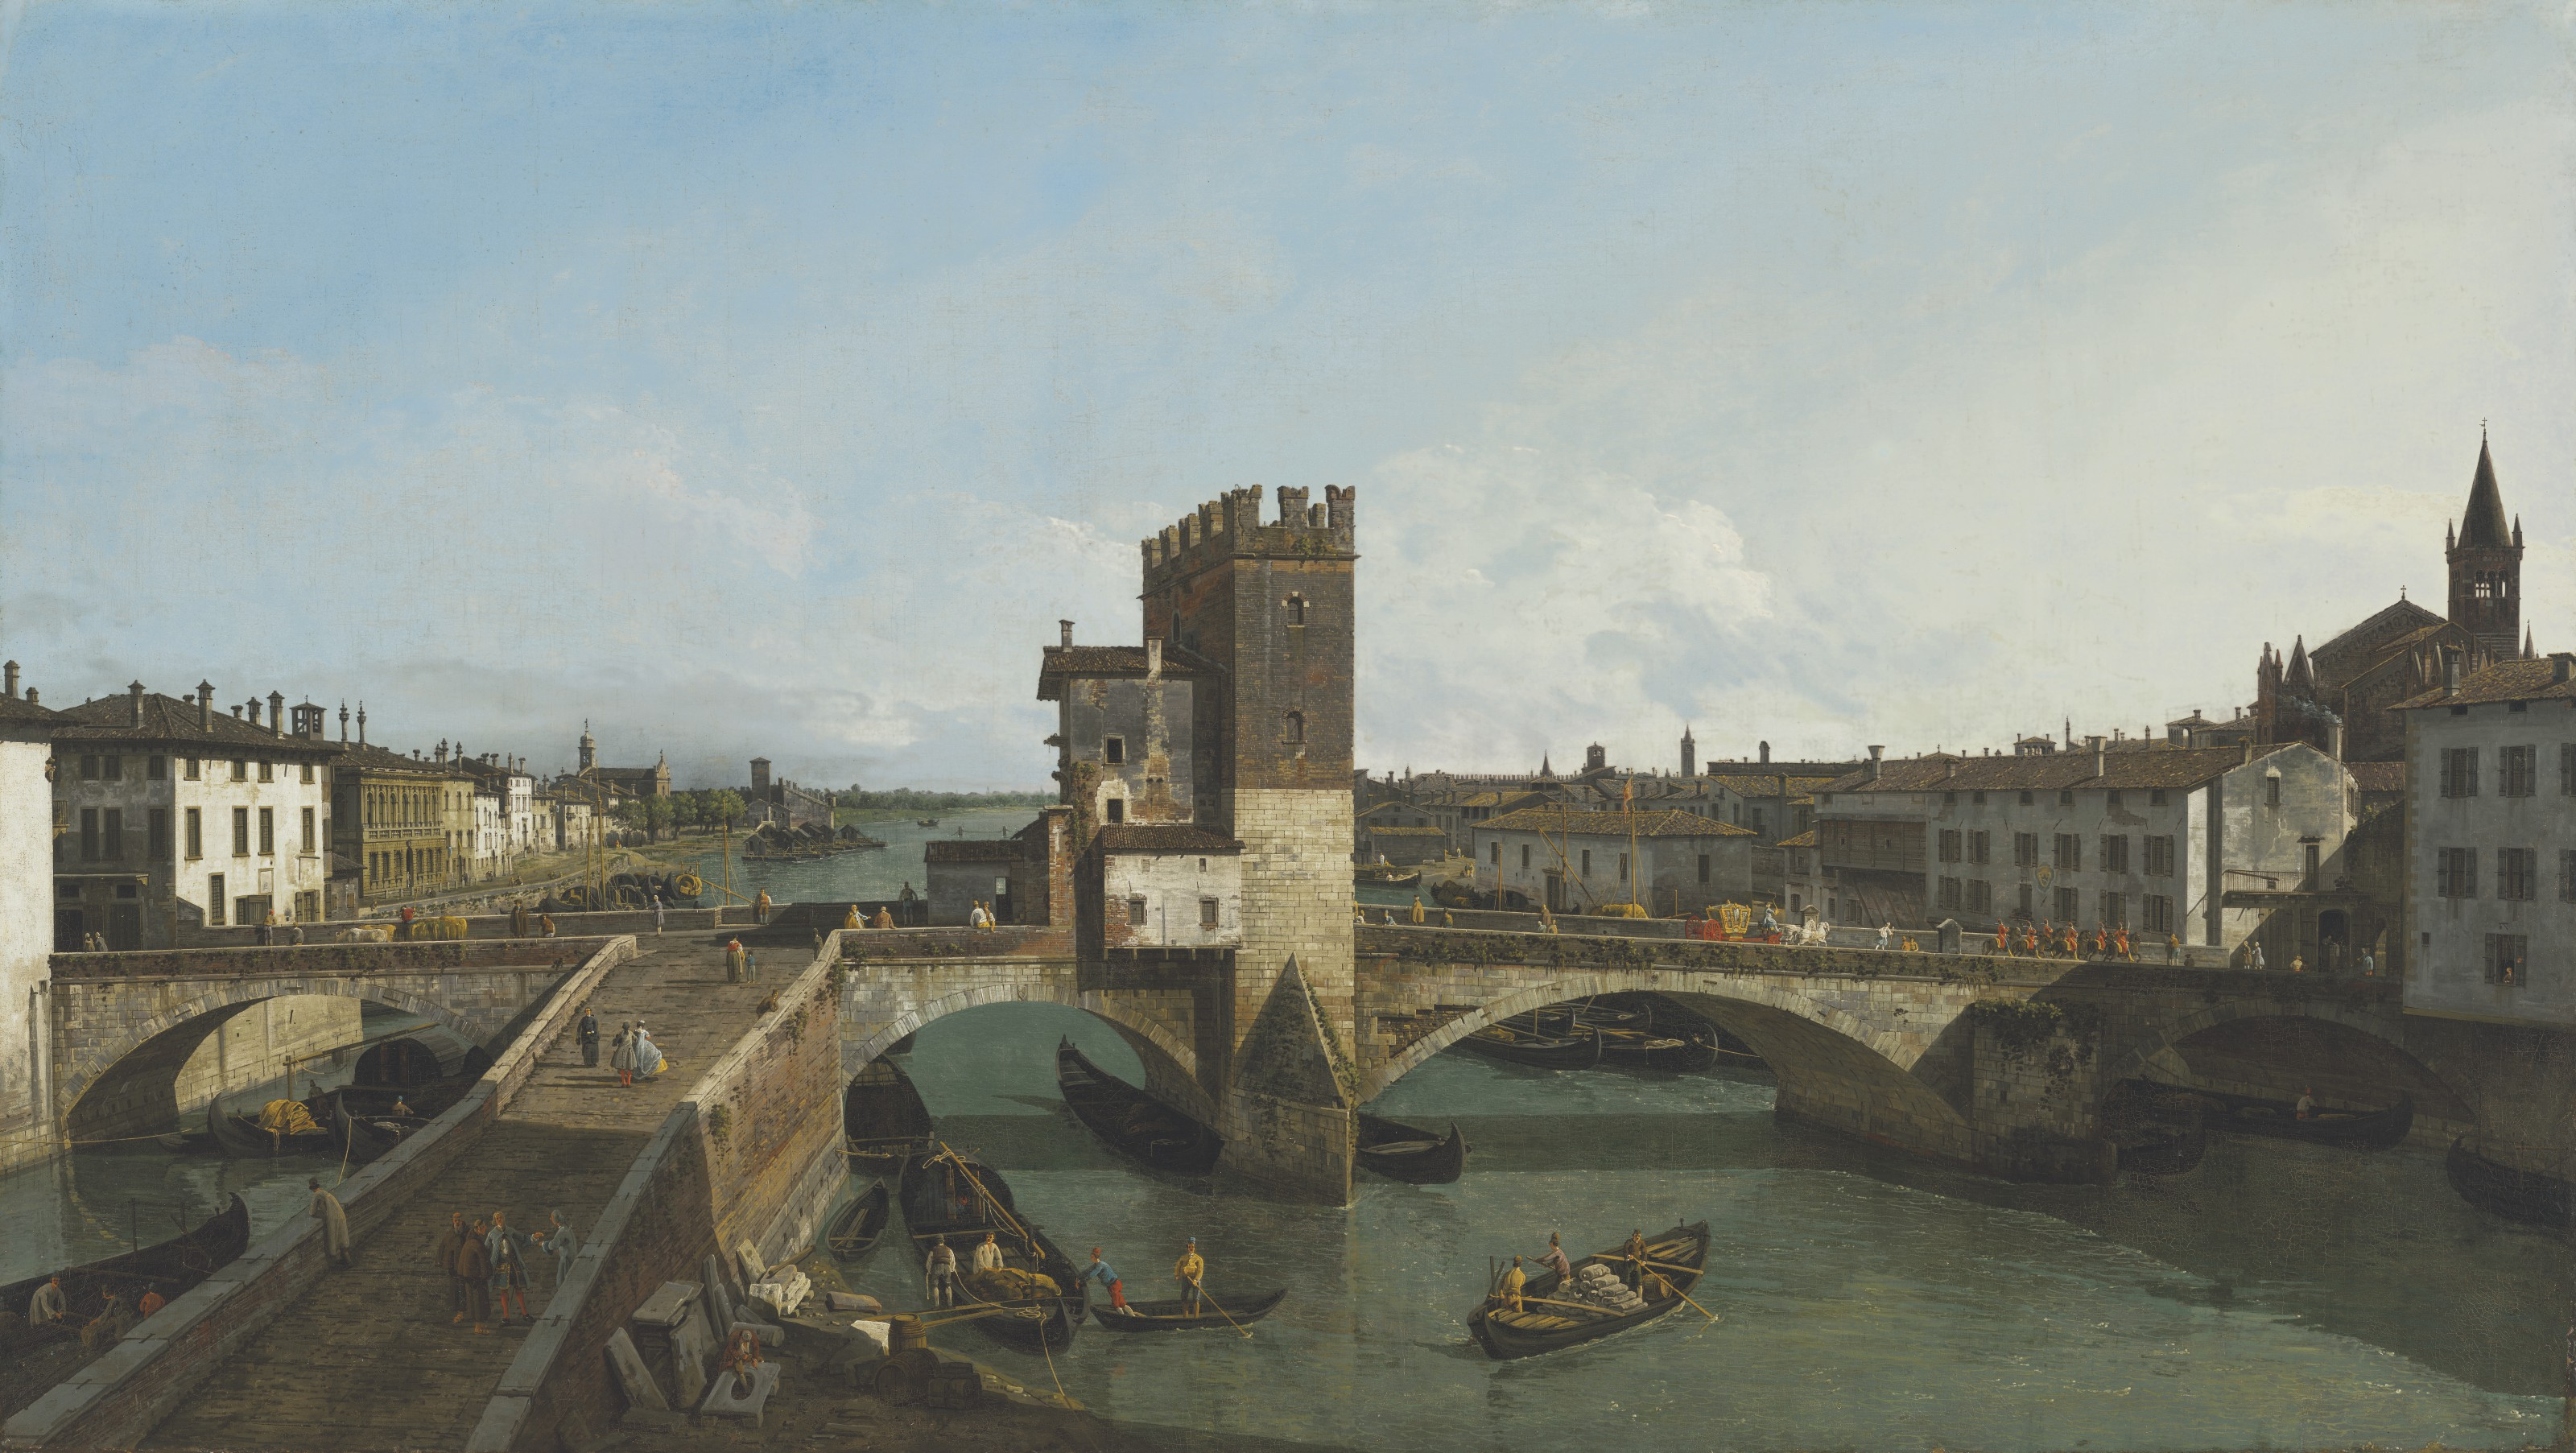 Bernardo Bellotto (1721-1780), View of Verona with the Ponte delle Navi, 1745-47. Oil on canvas, 52½ x 92½ in (133.3 x 234.8 cm). Estimate £12,000,000-18,000,000. Offered in the Old Masters Evening Sale on 8 July 2021 at Christie's in London